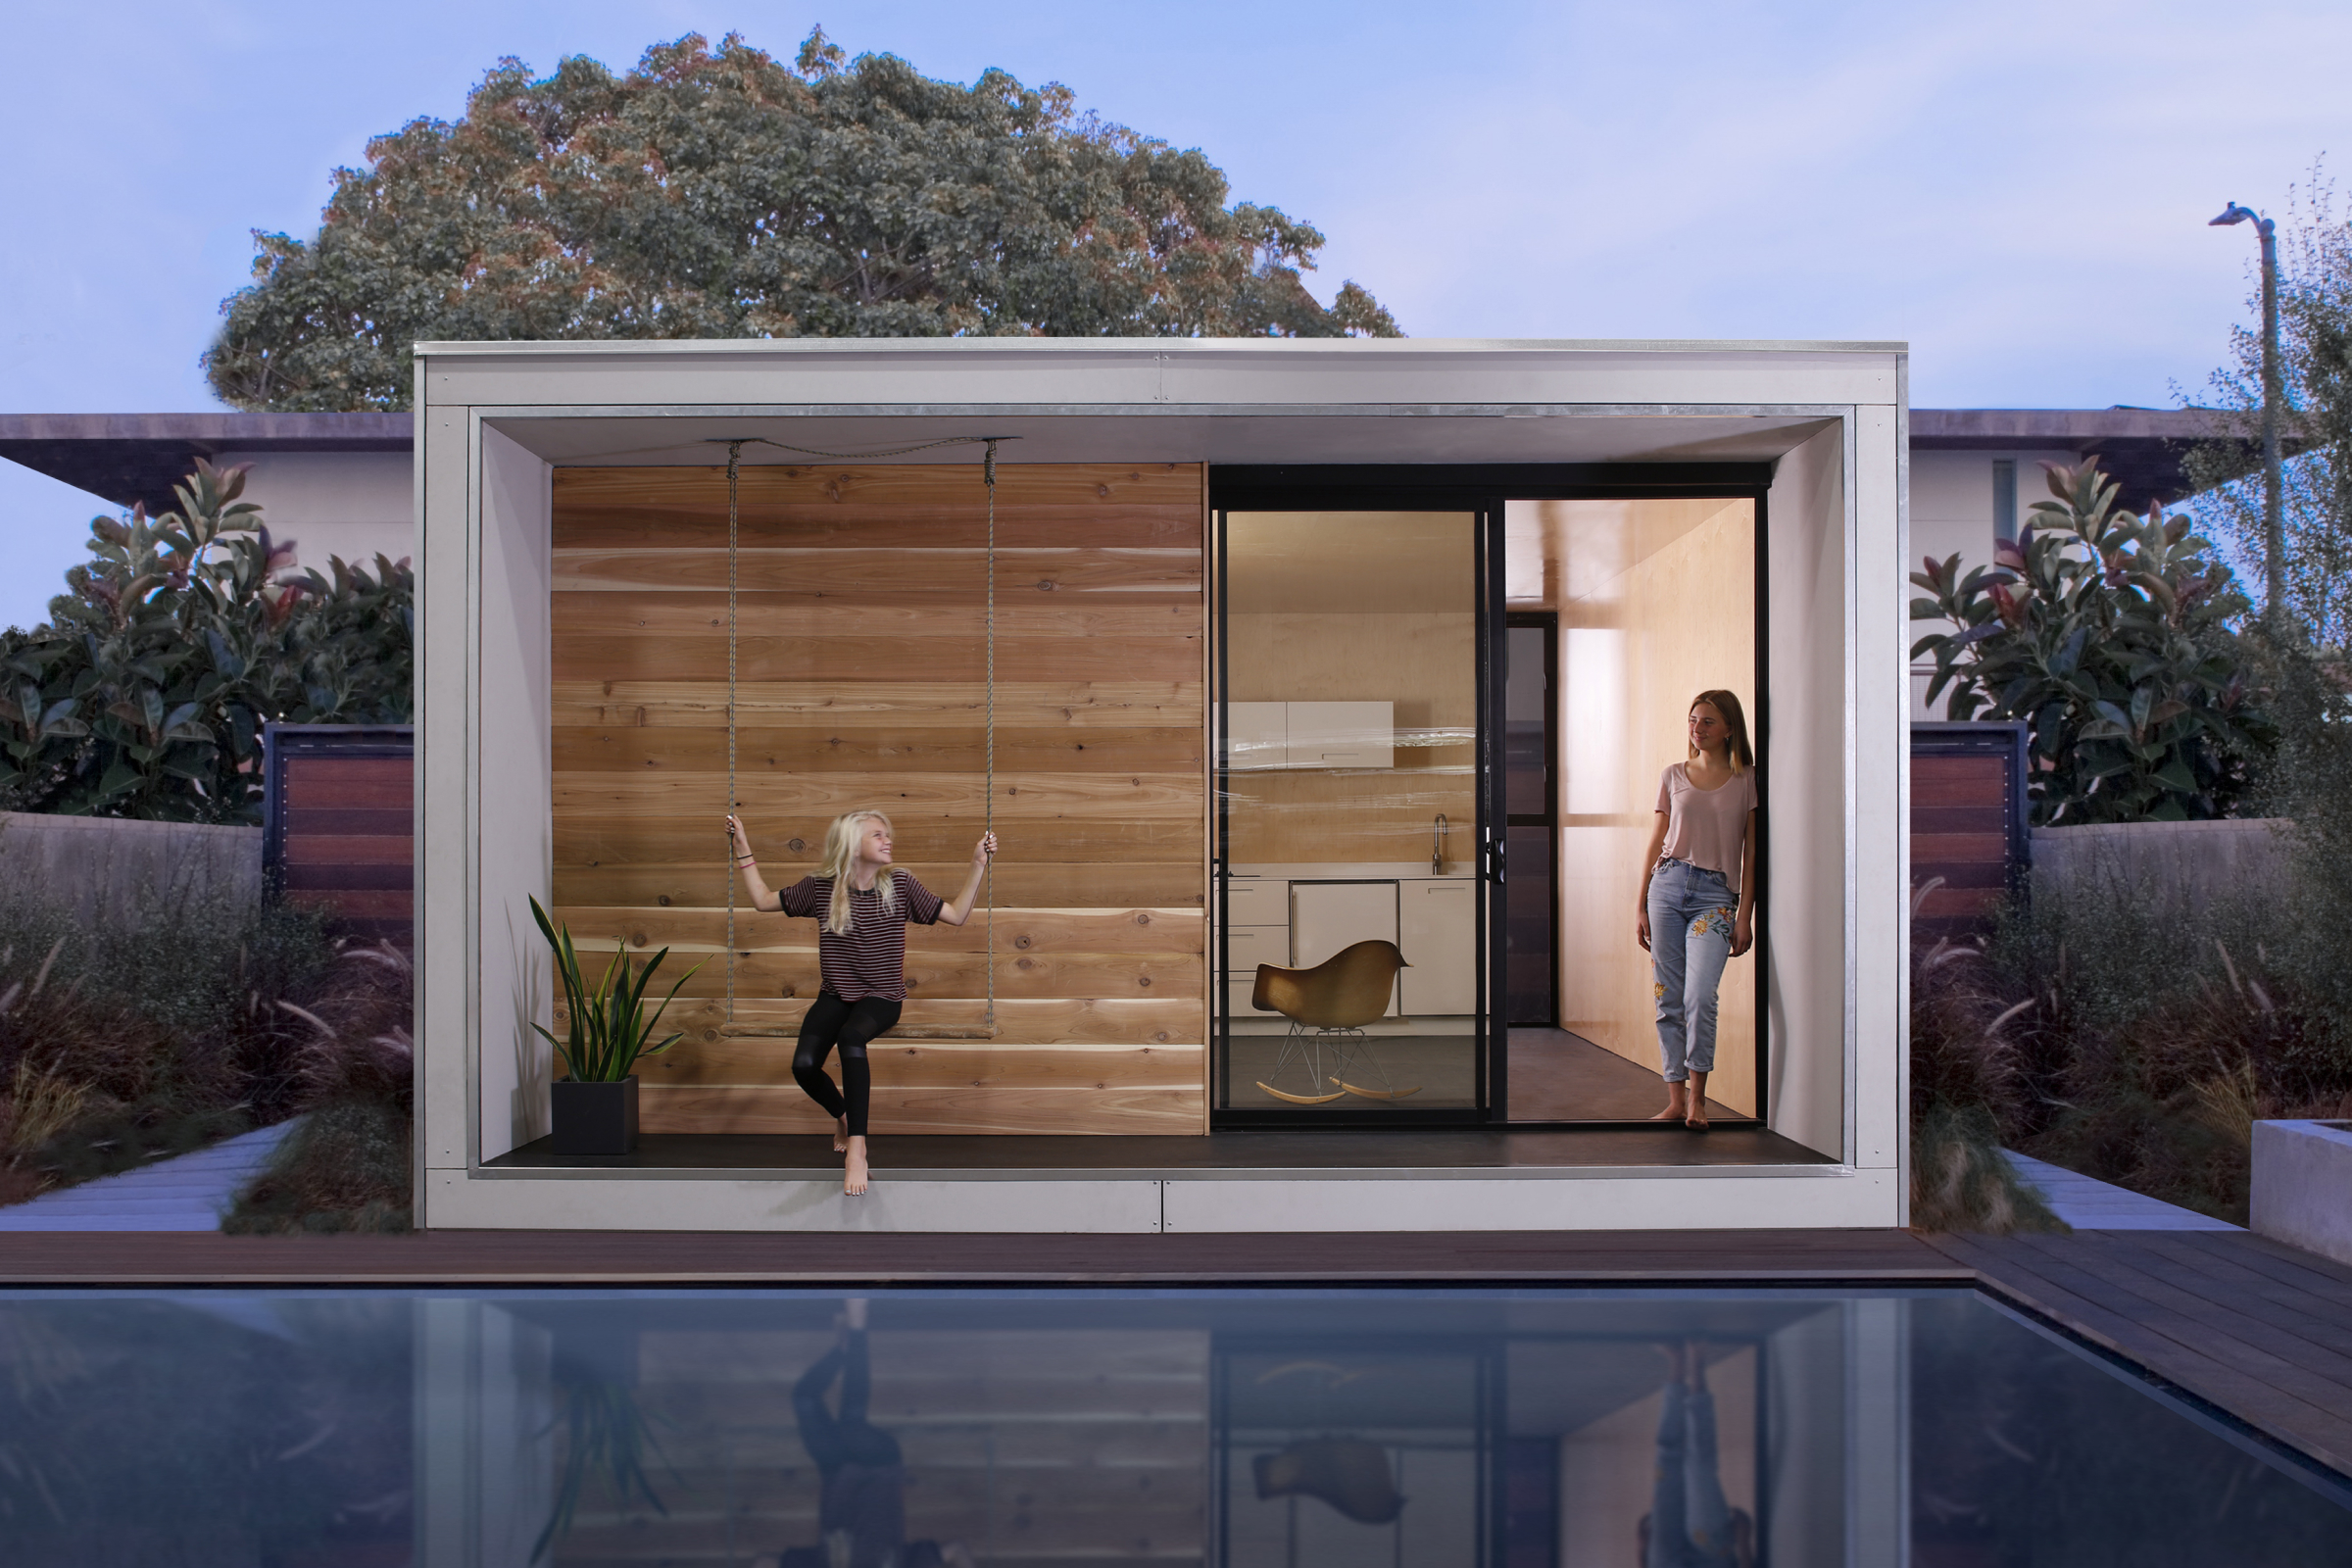 An exterior shot of a modular home illuminated at night with a girl on a swing and a pool in front.